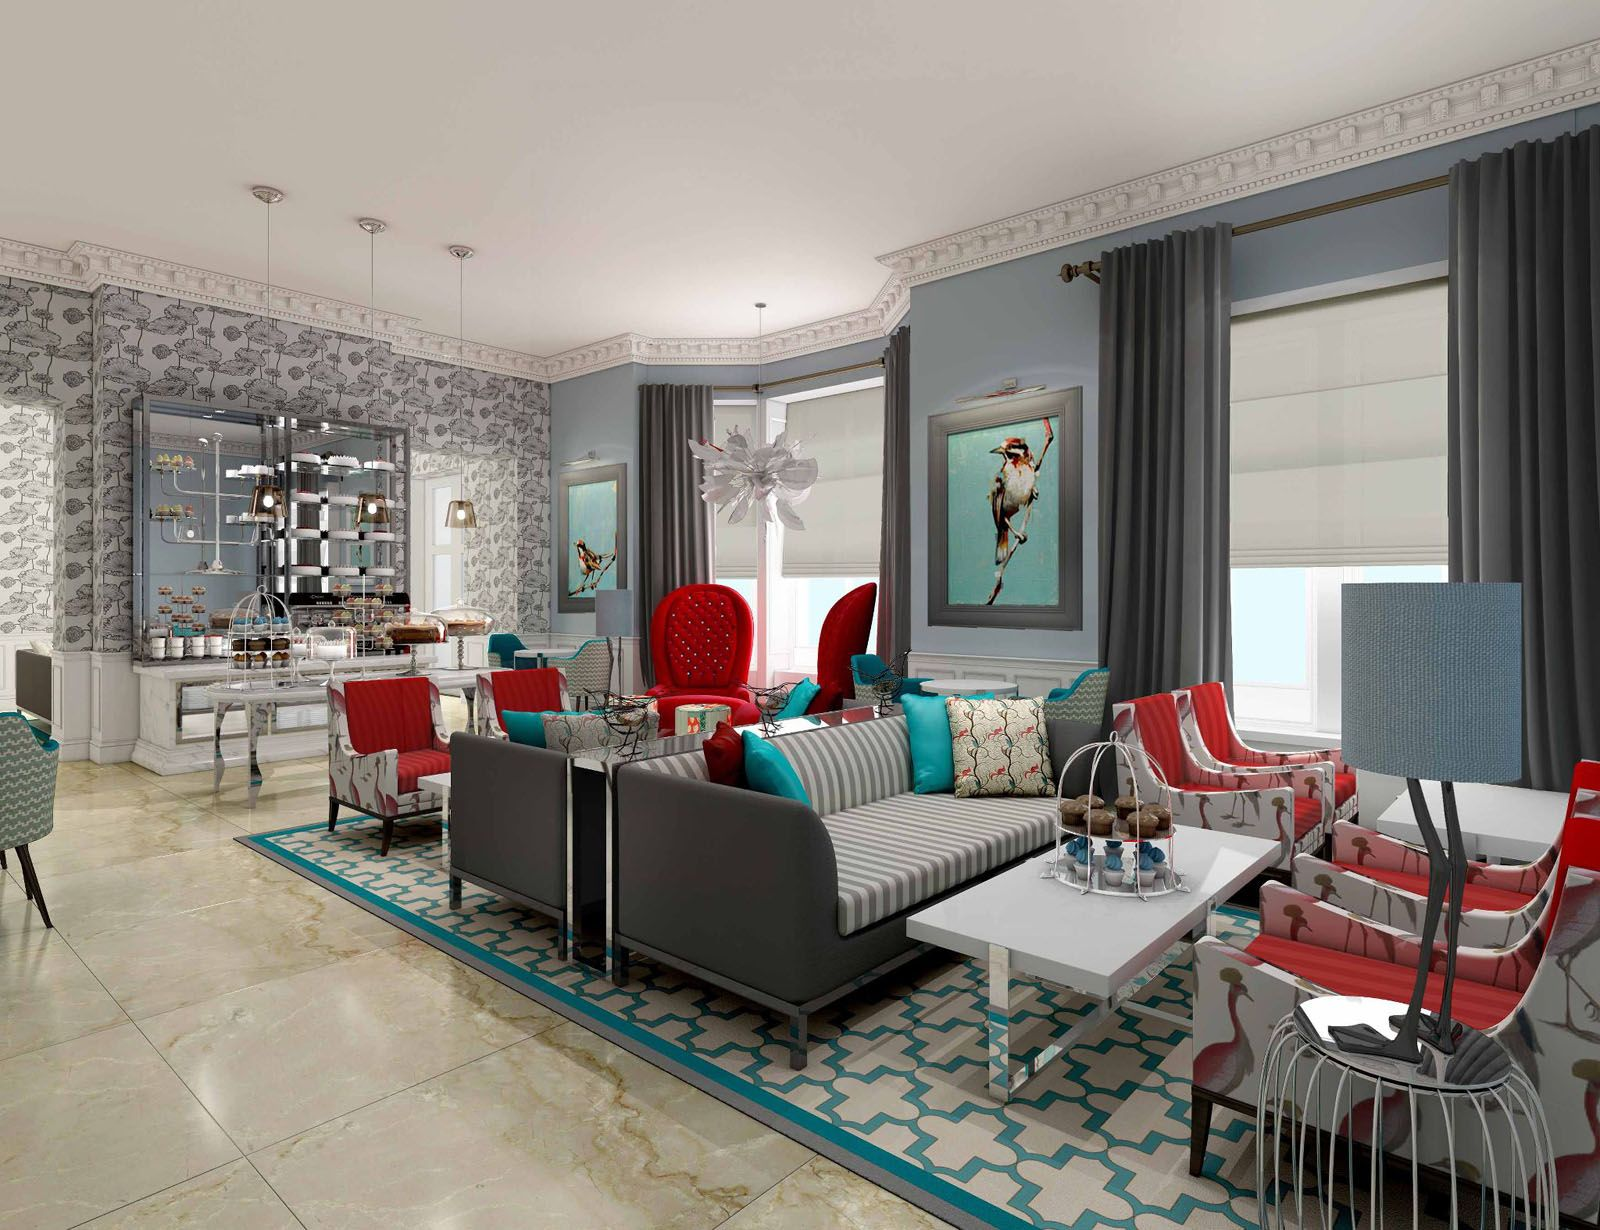 The Ampersand Hotel London Victorian Architecture With Modern